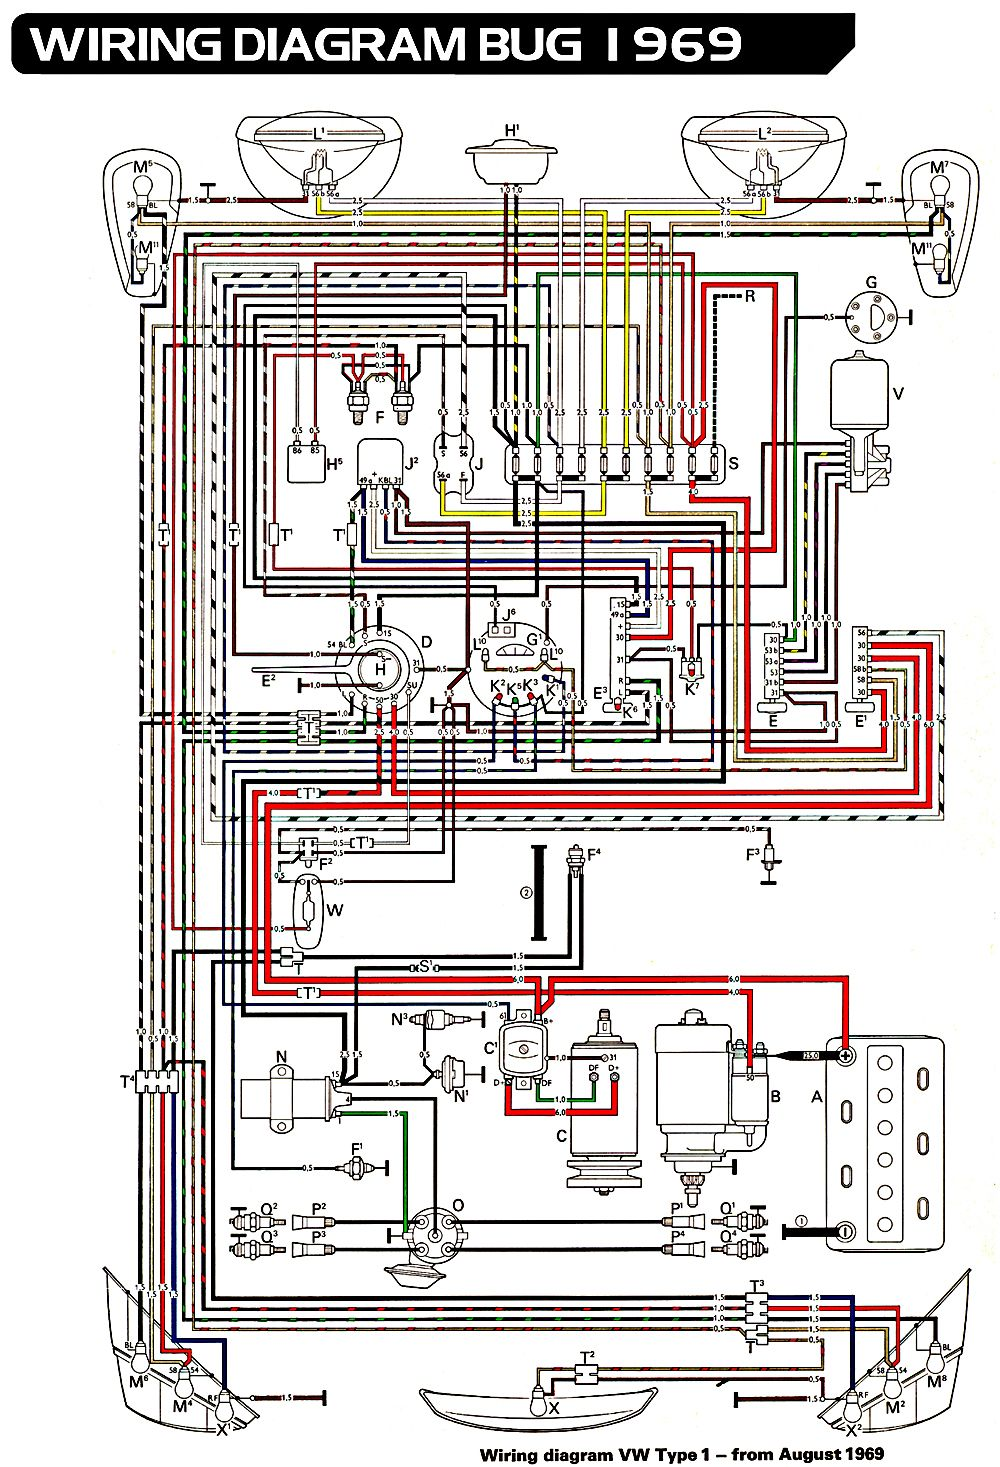 6d75c15875479254f26a32a8499d9044 volkswagen beetle wiring diagram 1966 vw beetle wiring vw wiring diagrams at gsmportal.co